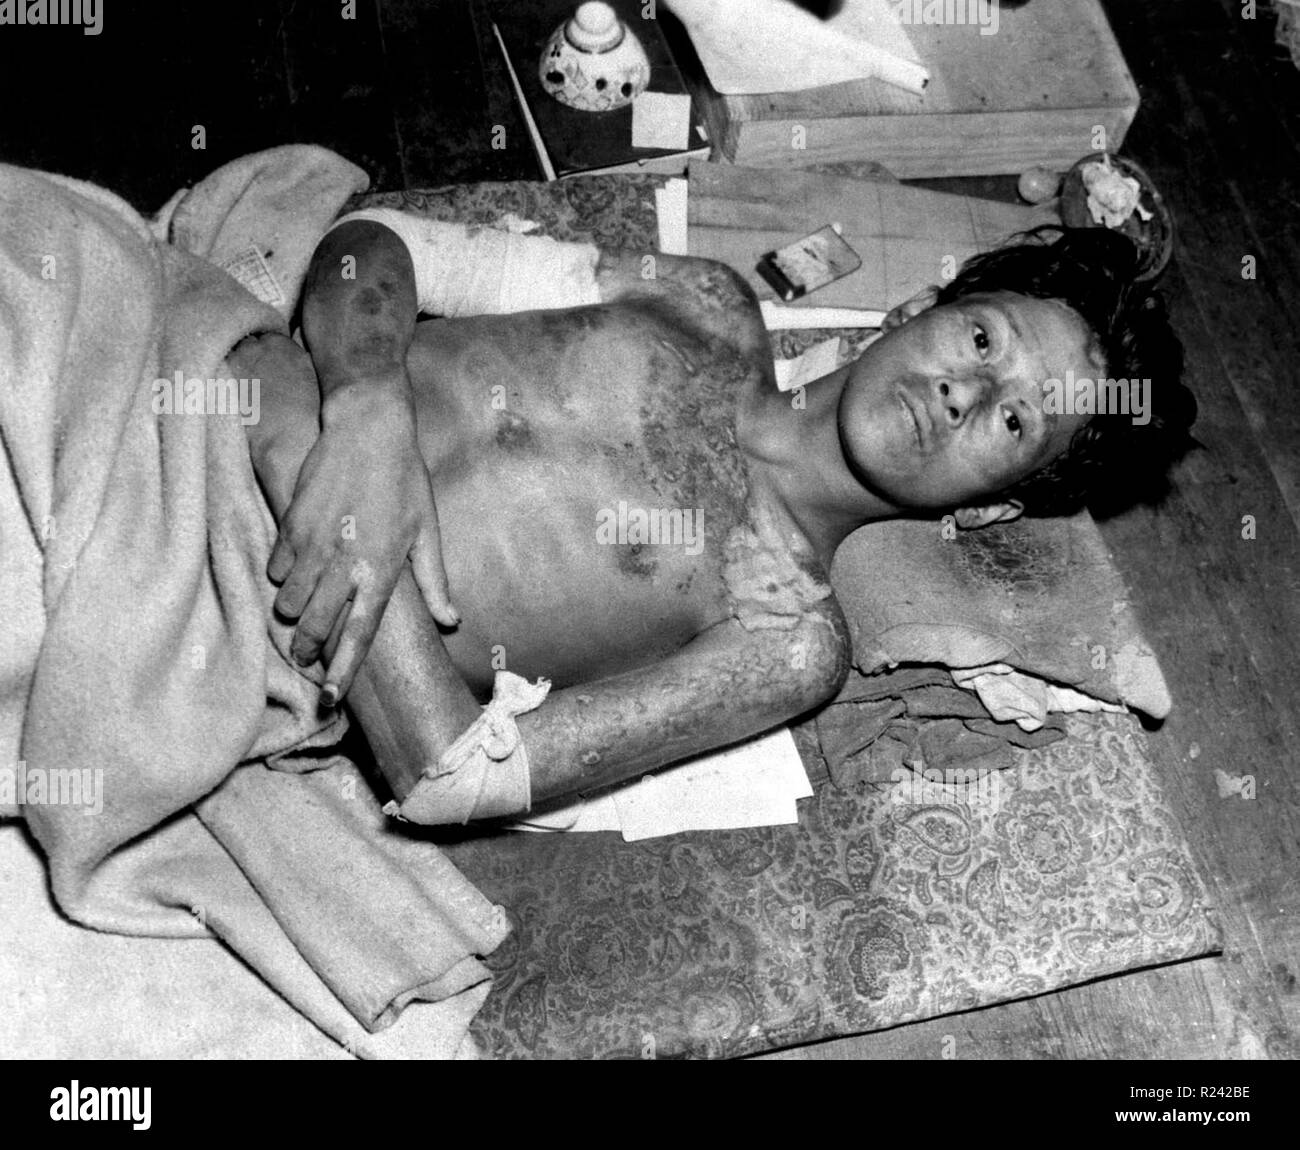 World War II, casualty after the explosion of the atom bomb in August 1945 Hiroshima, Japan Stock Photo